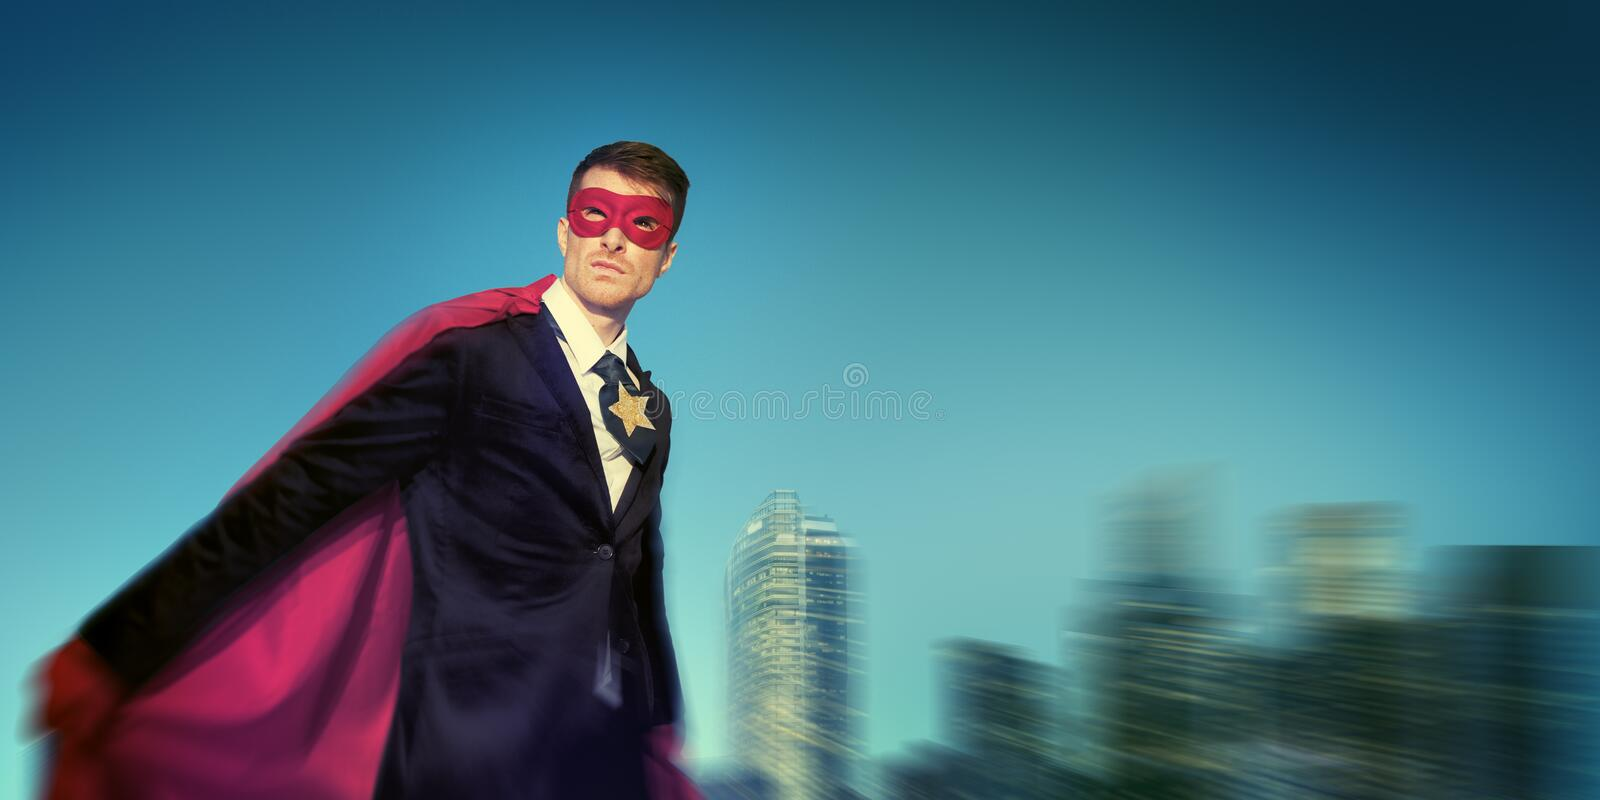 Strong Powerful Business Superhero Cityscape Concepts royalty free stock image